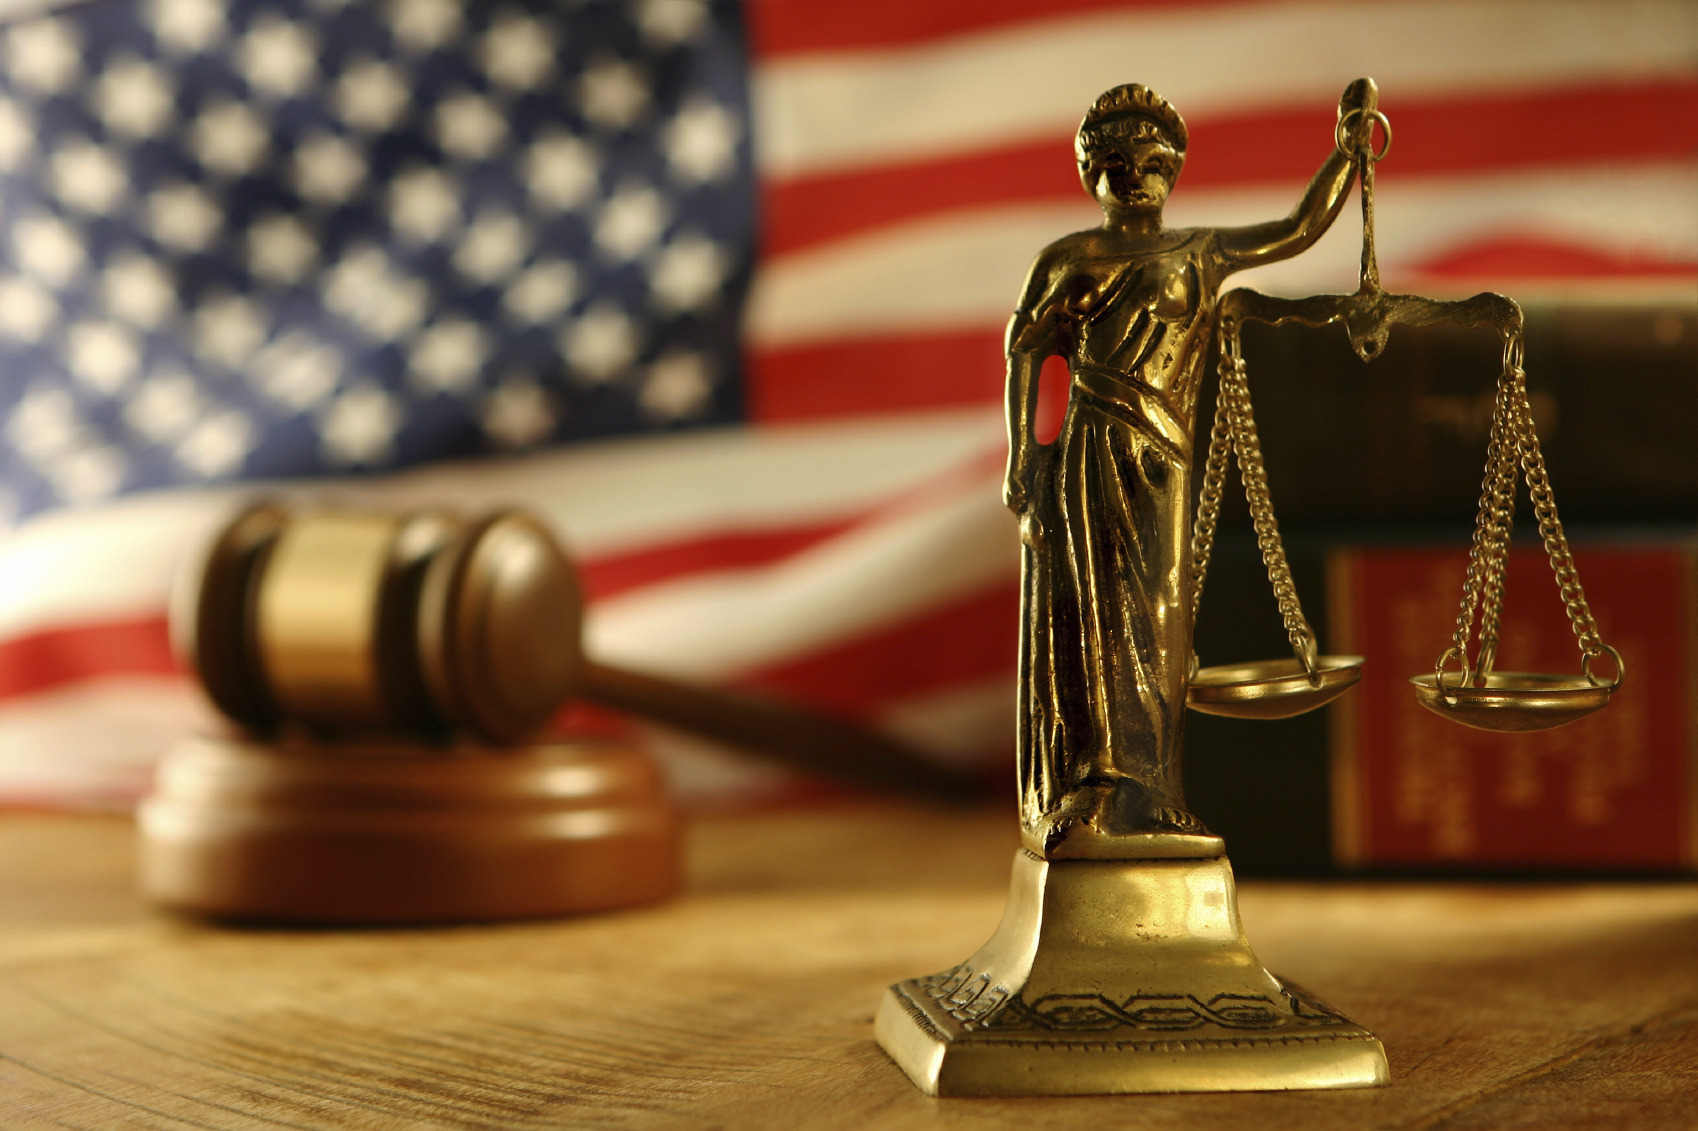 Scales of Justice statue in front of a American flag, a judges gavel, and books blurred in the background.